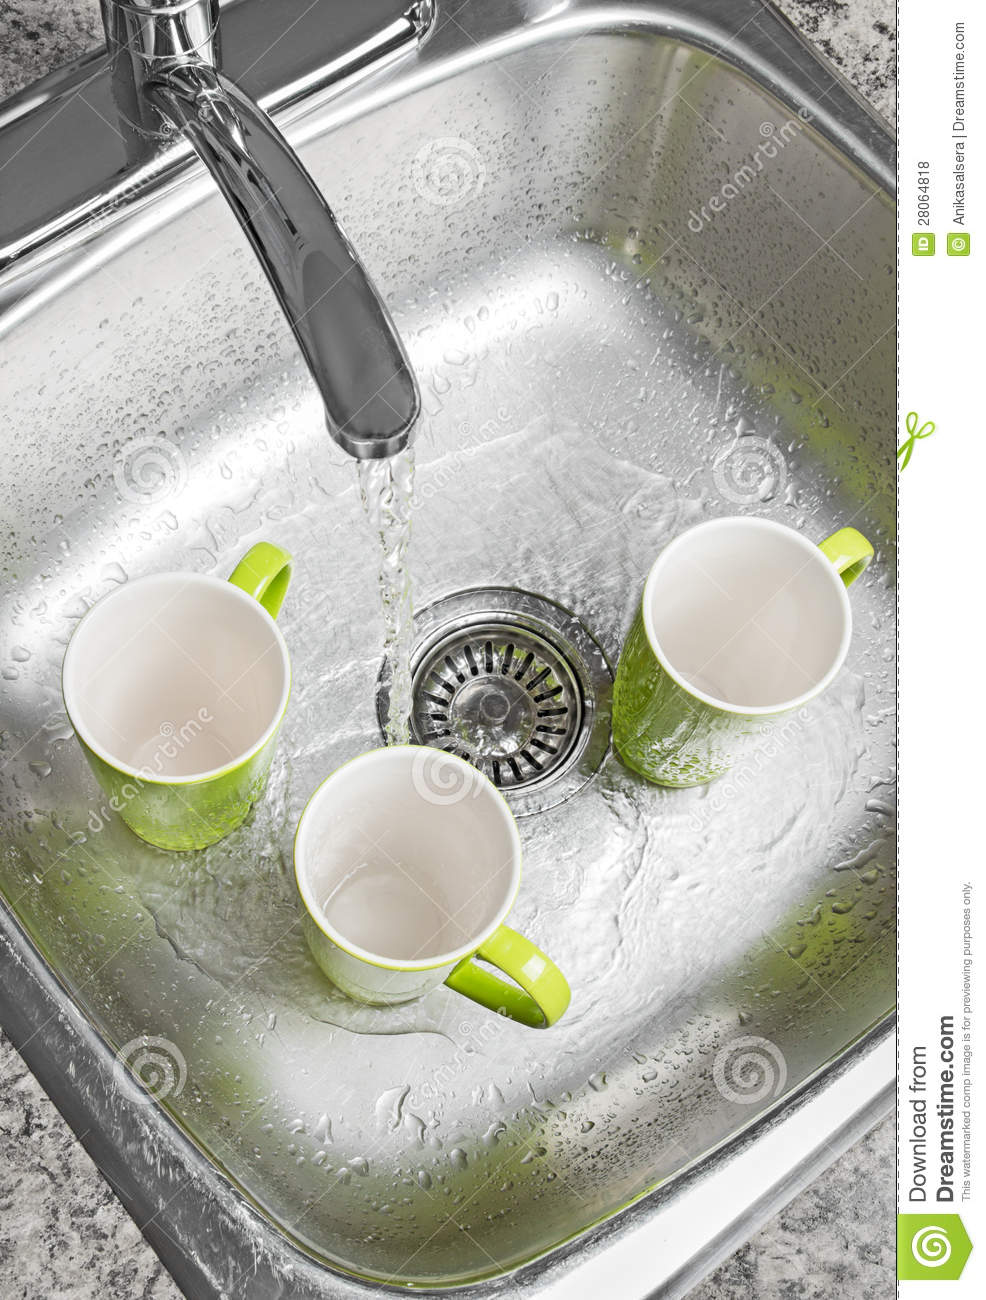 Washing green cups in the kitchen sink. Water running from the tap.